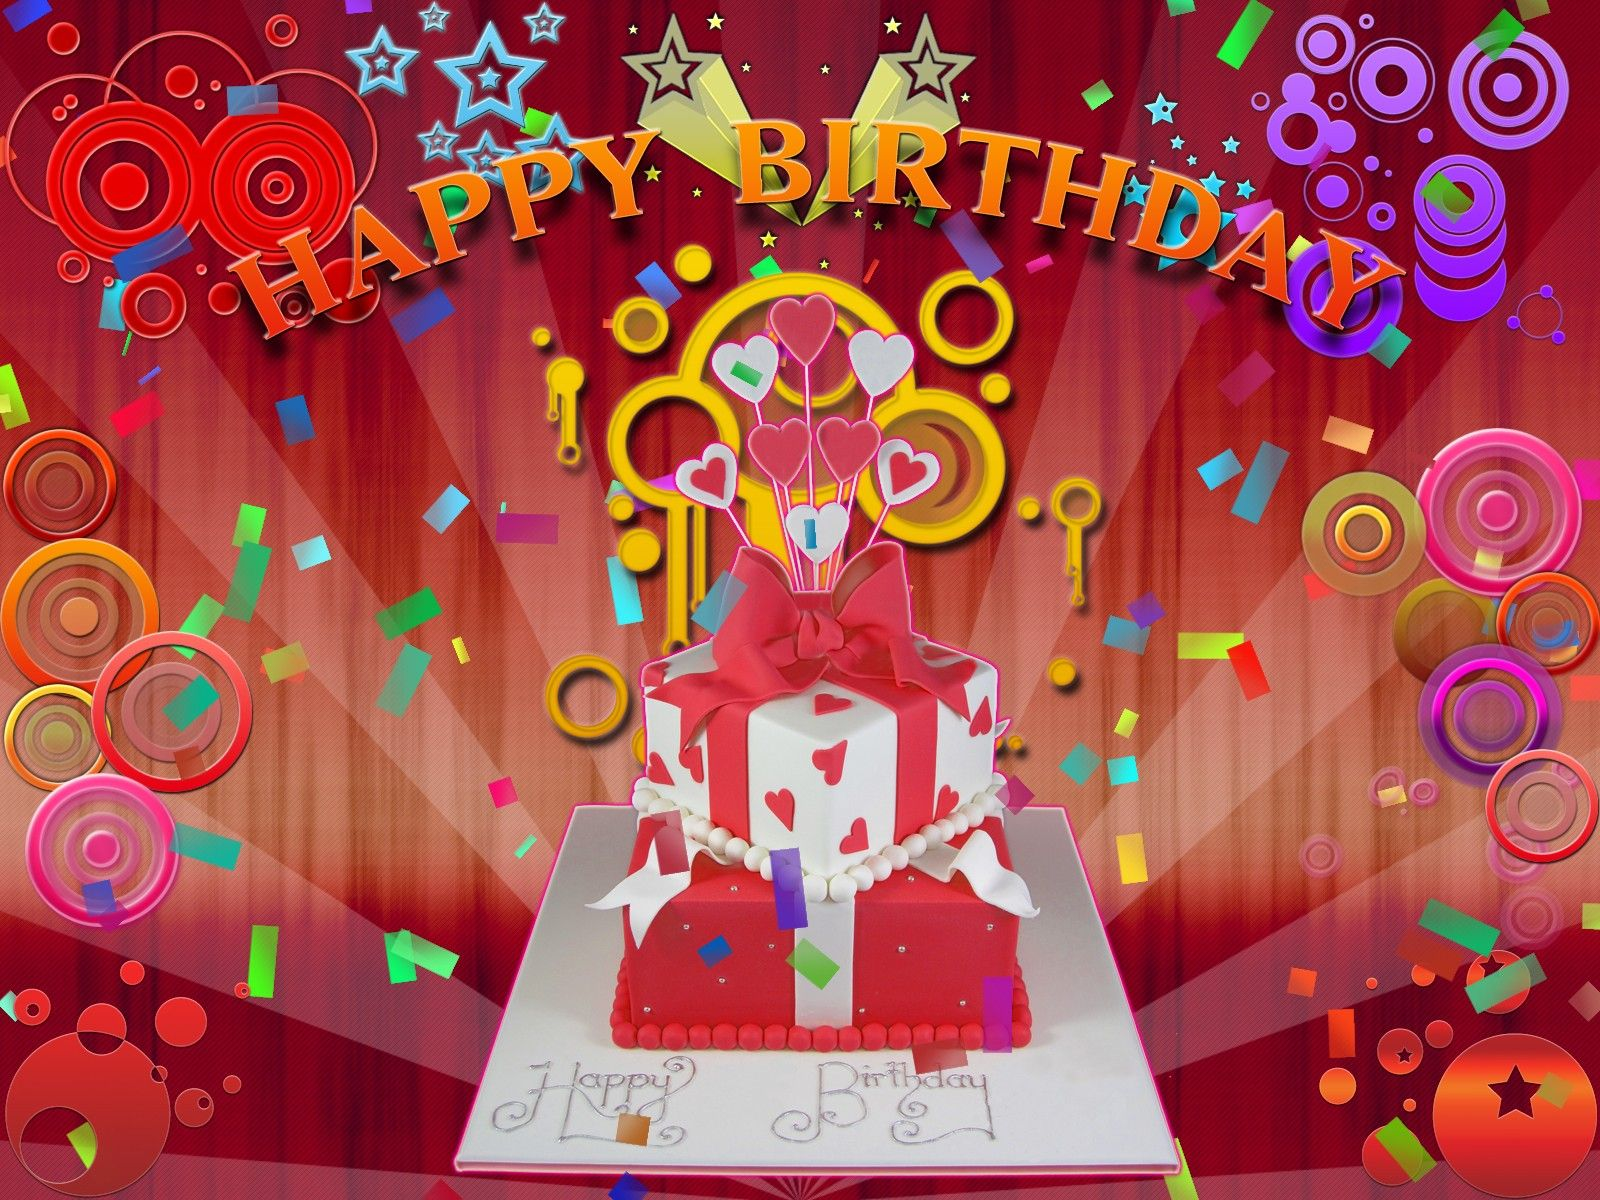 Best ideas about birthday wallpaper on pinterest happy 1280800 best ideas about birthday wallpaper on pinterest happy 1280800 happy bday images wallpapers voltagebd Images